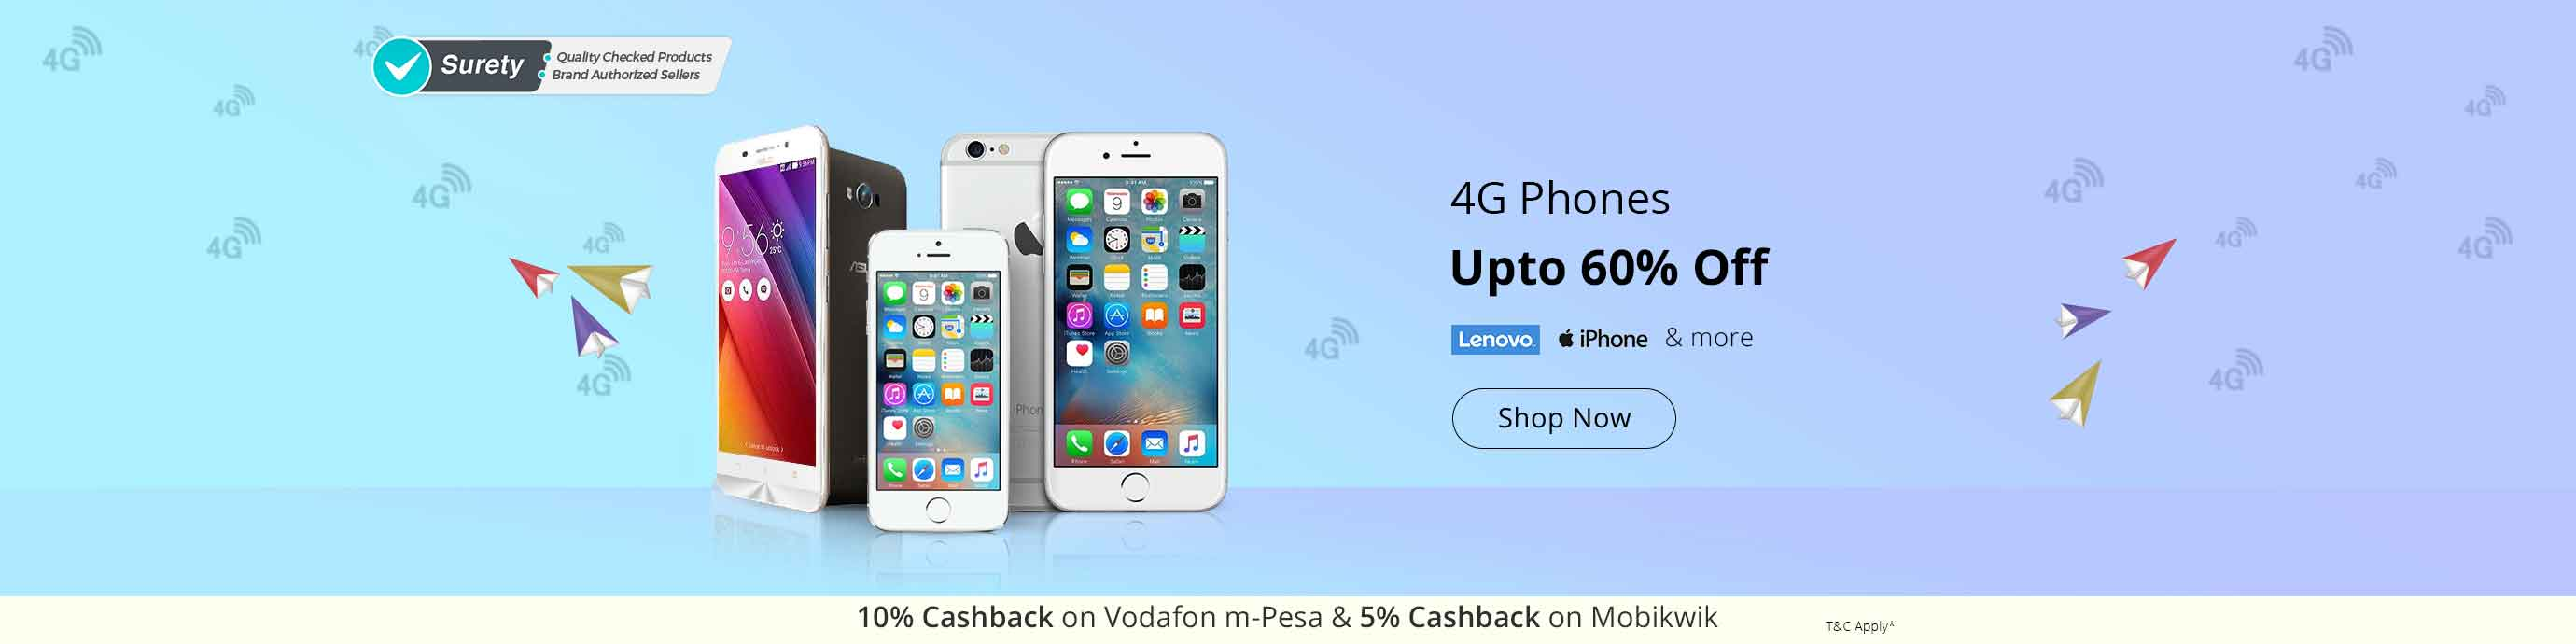 Lenovo, Iphone & more 4G Phone upto 60% off